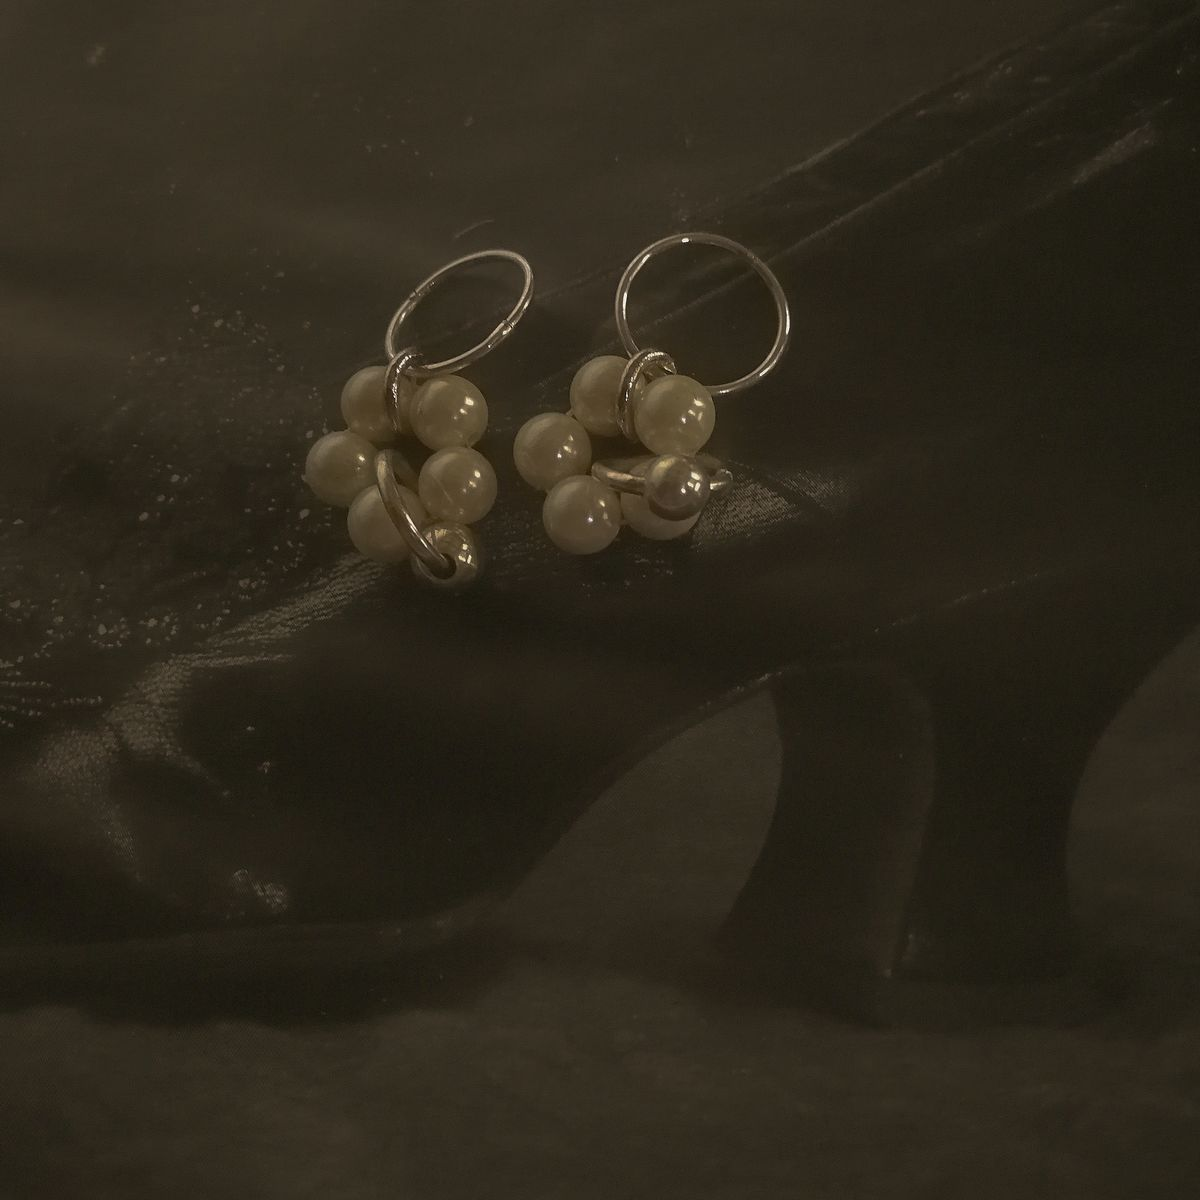 FOREVER DAISY CHAIN HOOP EARRINGS - product images  of